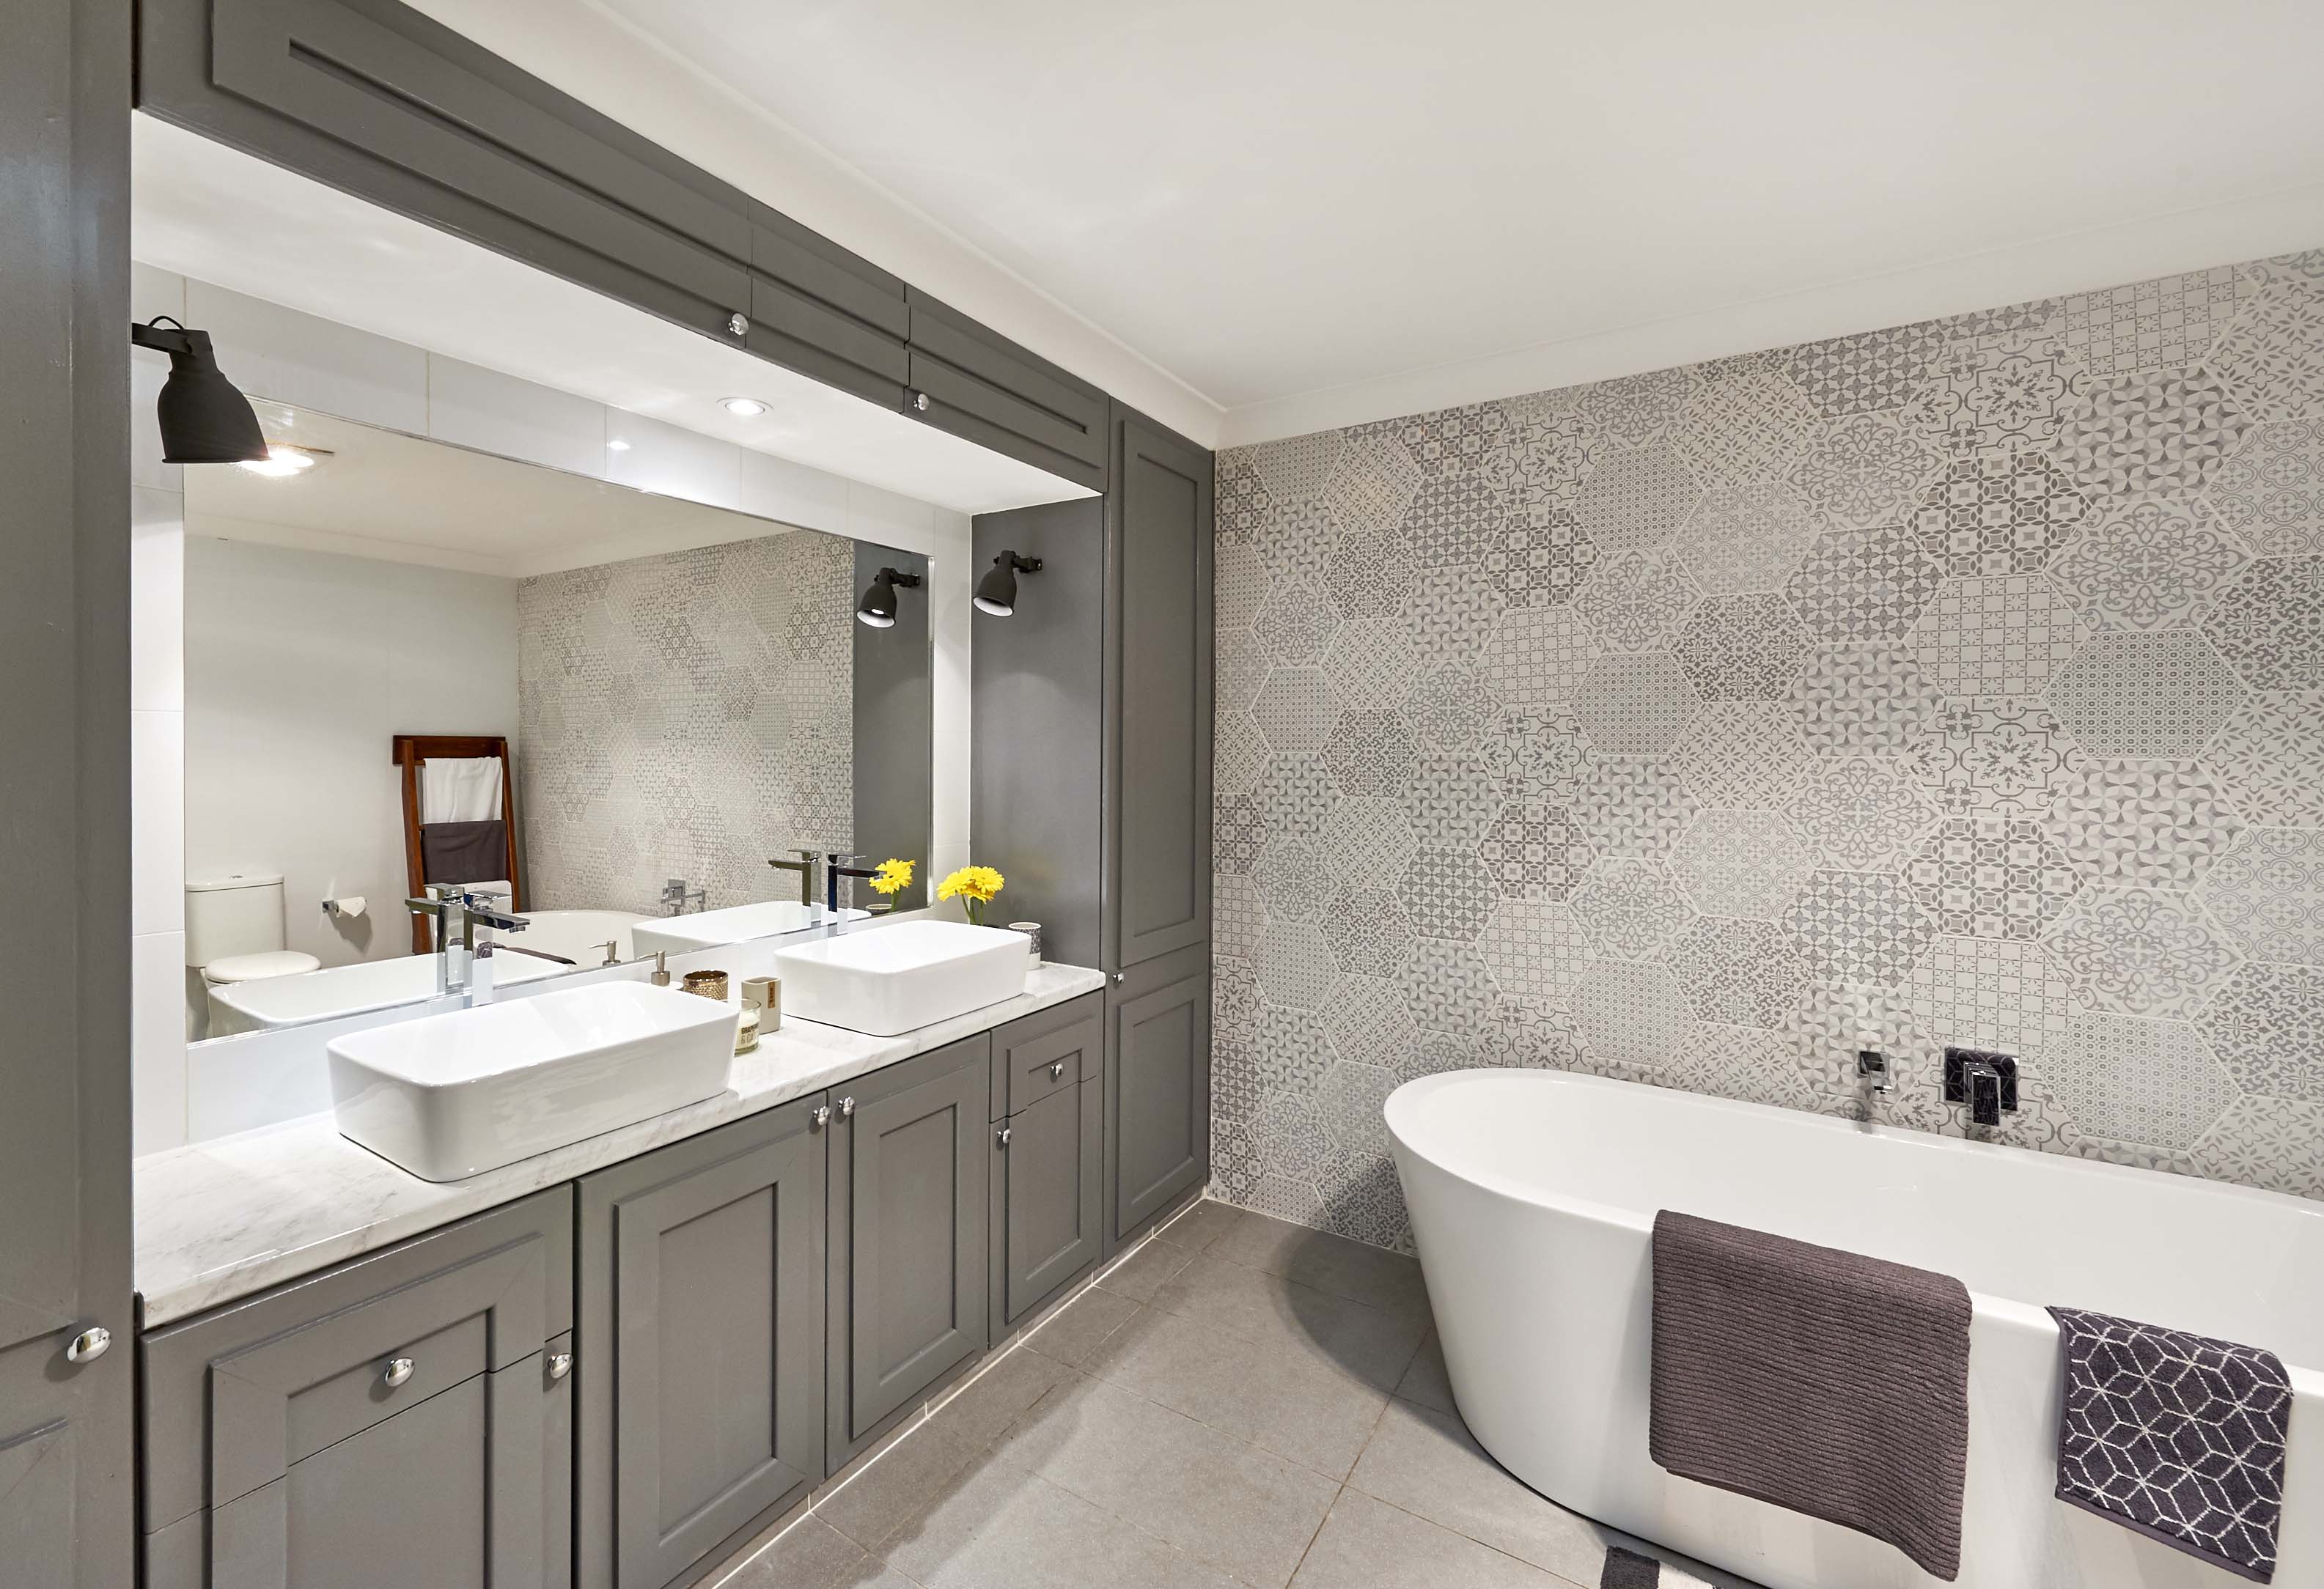 Real Homes Two Bathrooms Transformed For Just 3000 And